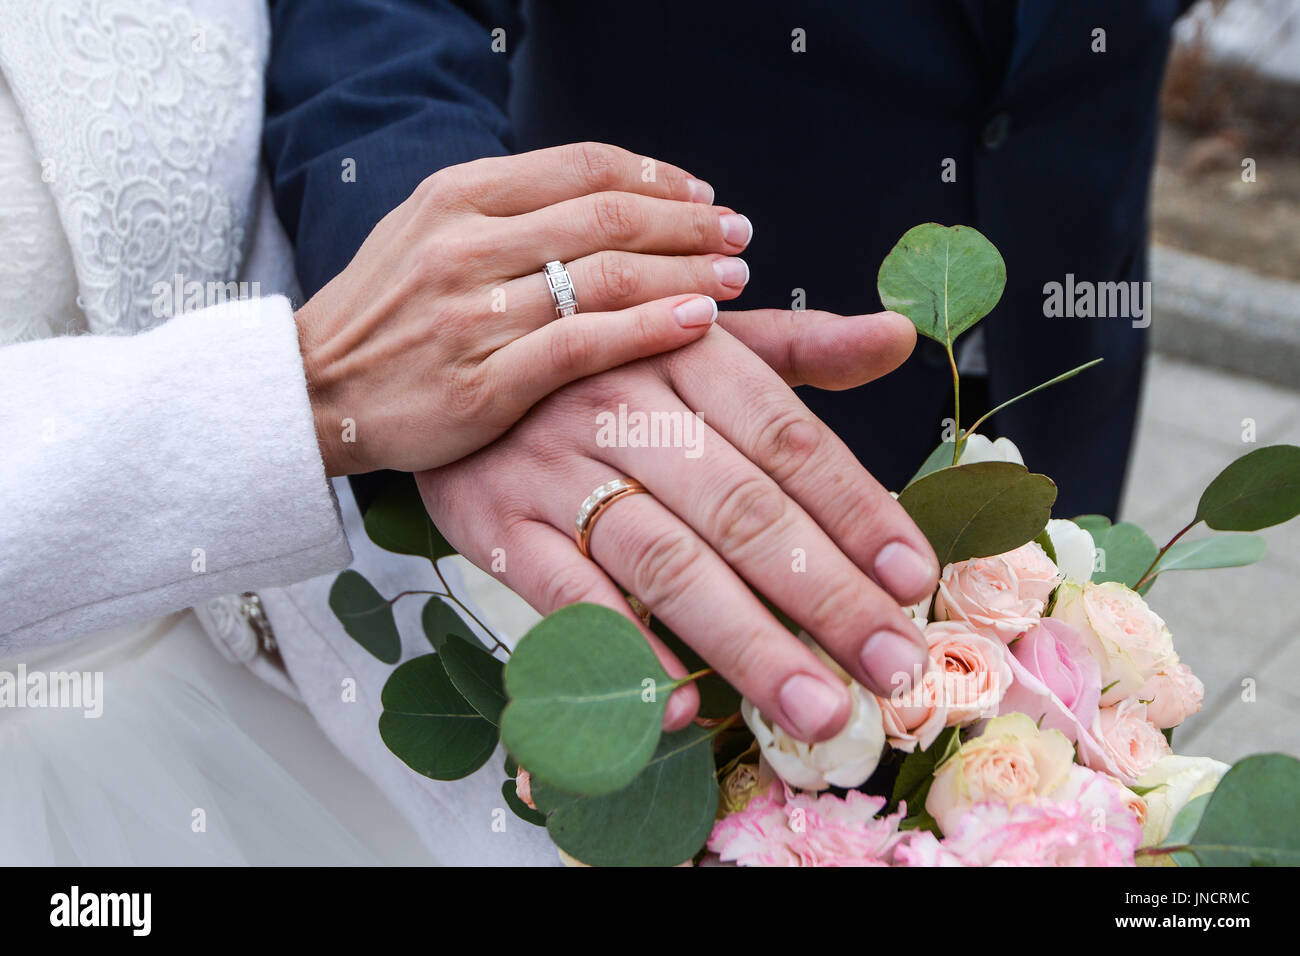 Wedding Vows Ring Stock Photos & Wedding Vows Ring Stock Images - Alamy